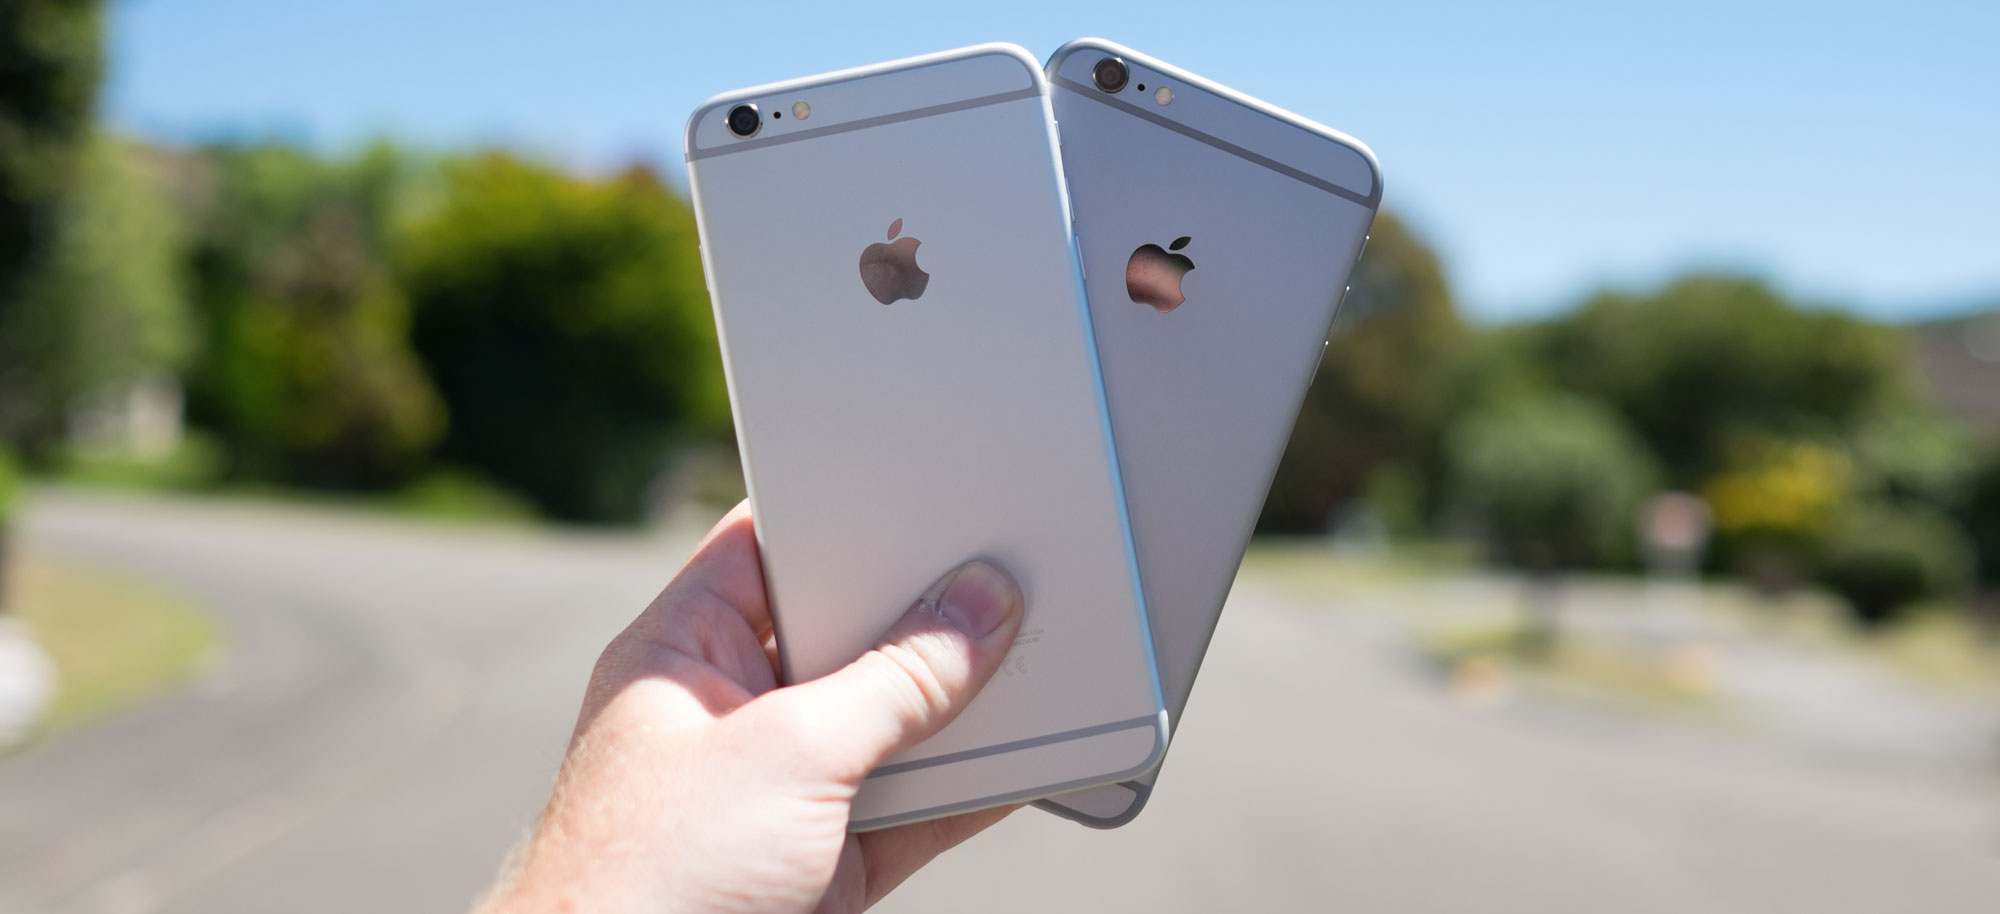 iPhone 6 Plus, Four Months On: Still the Best, With a Catch